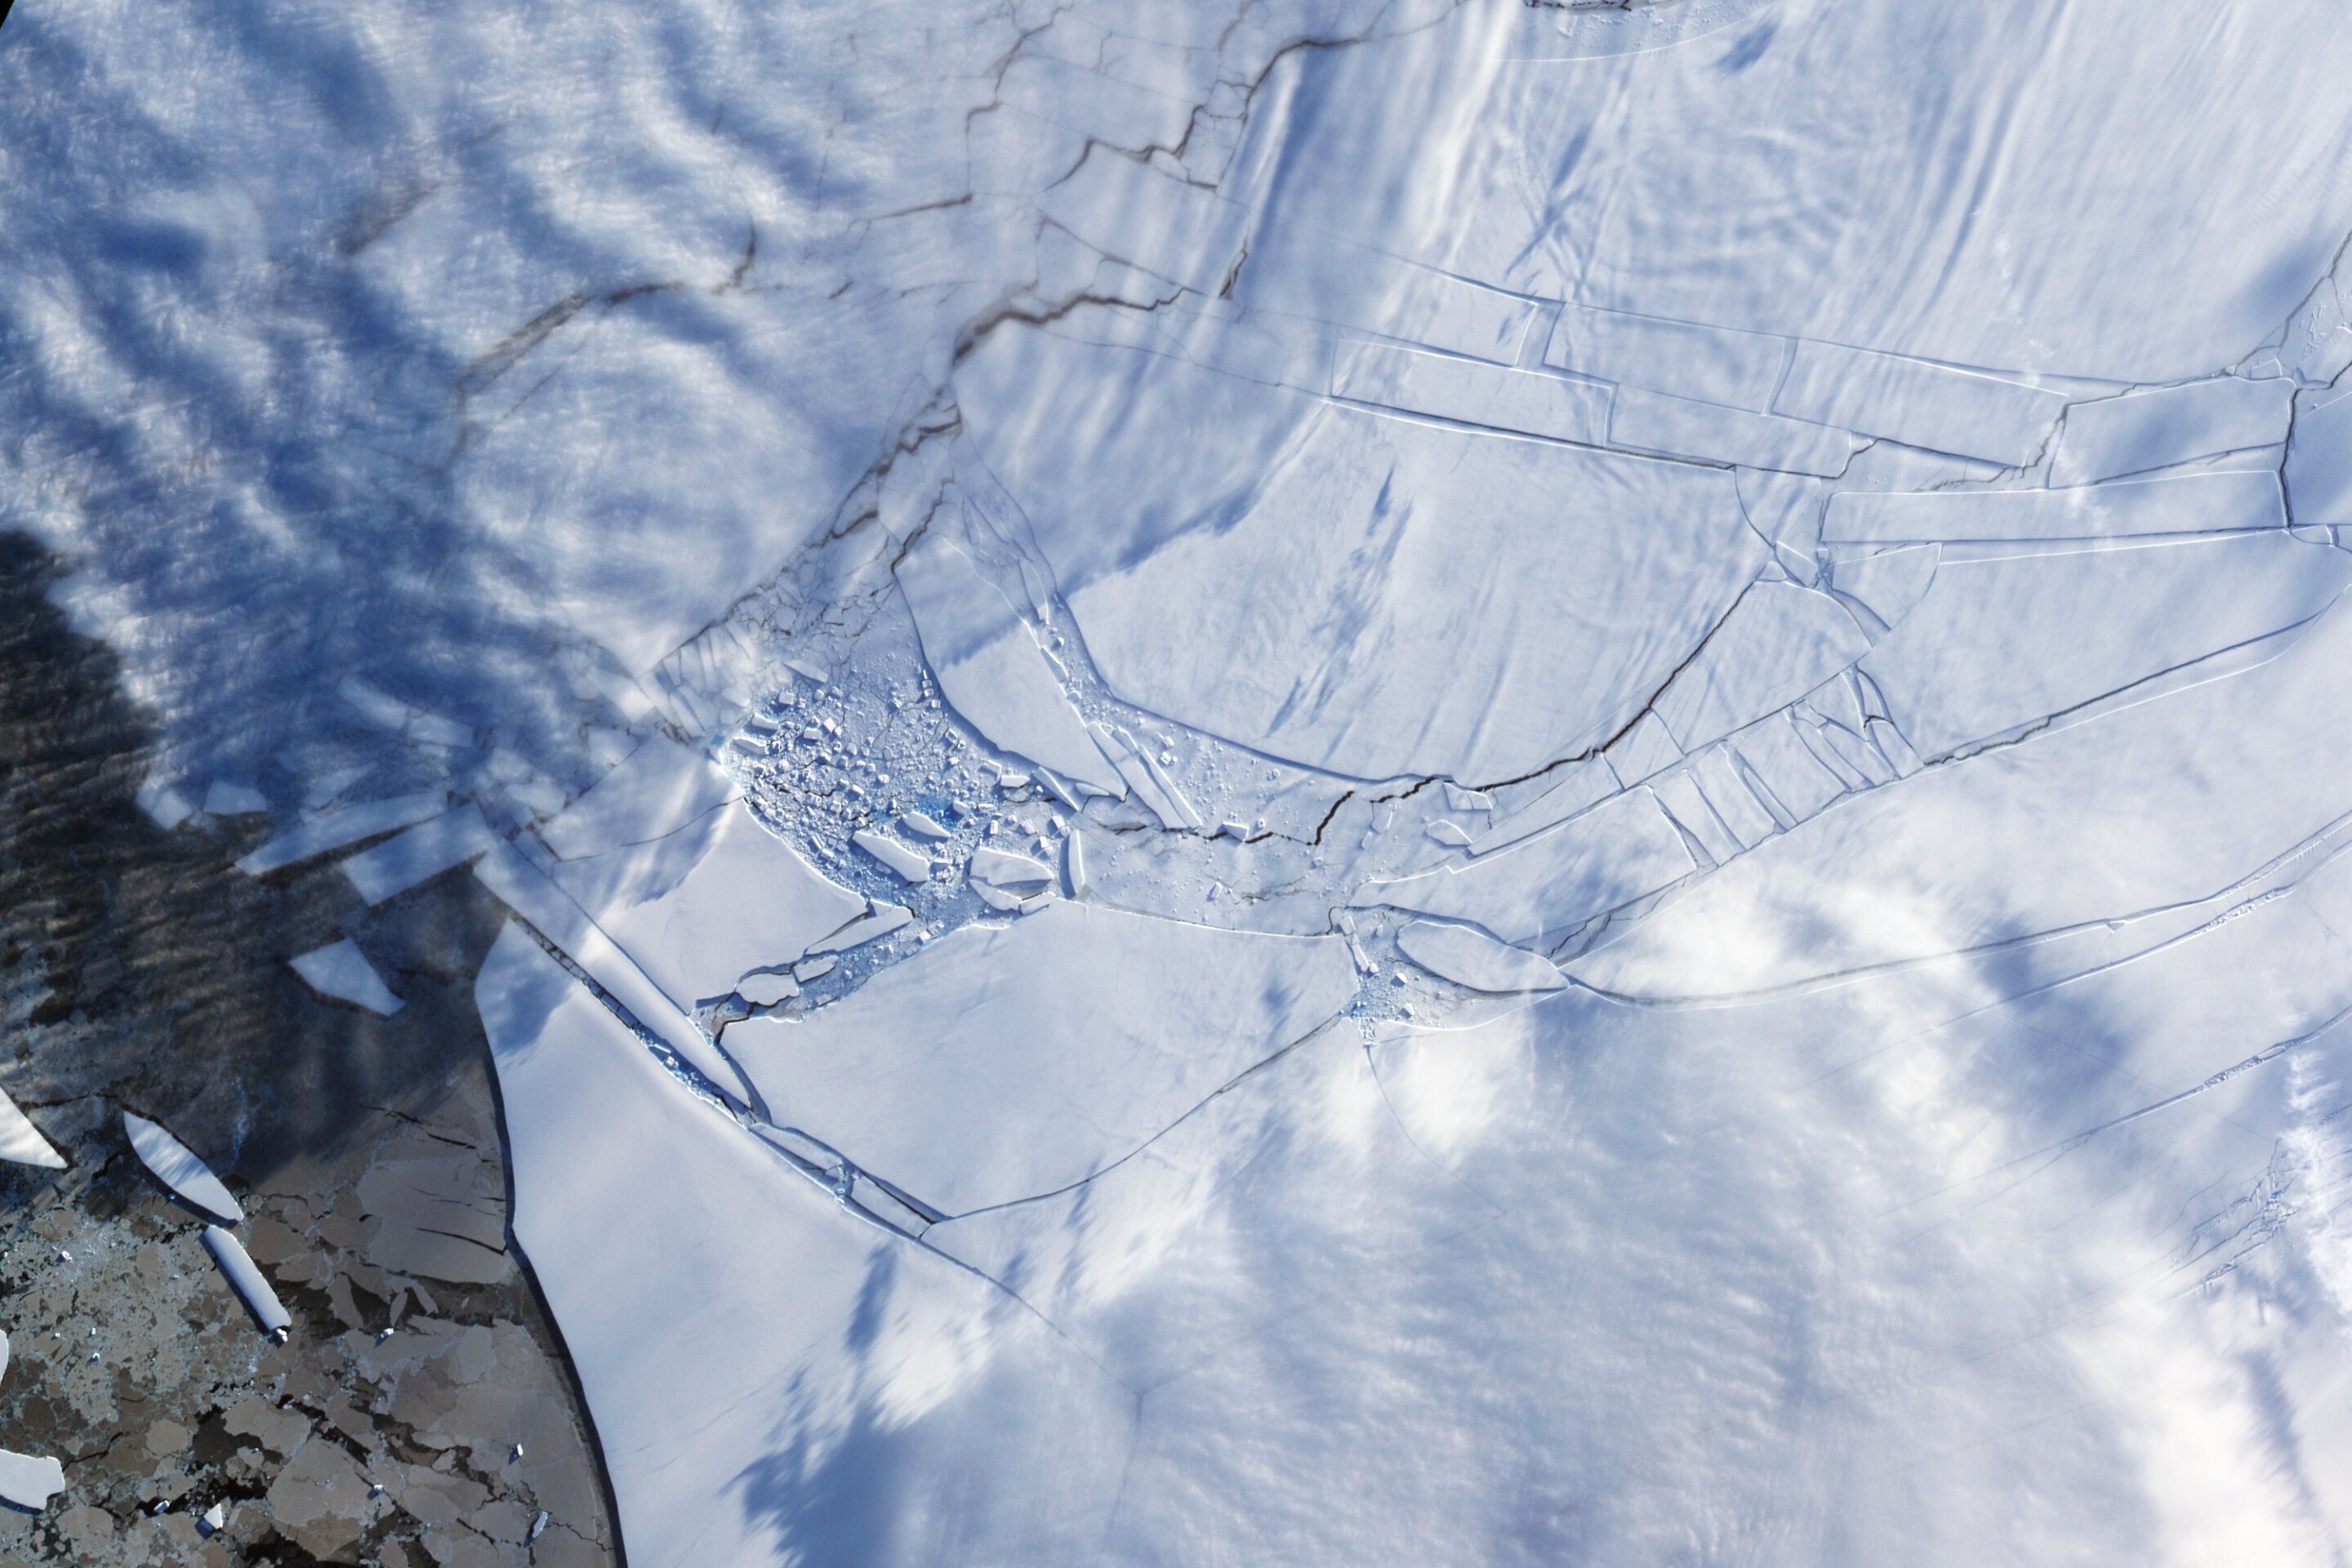 Catastrophic sea-level rise from Antarctic melting possible with severe global warming